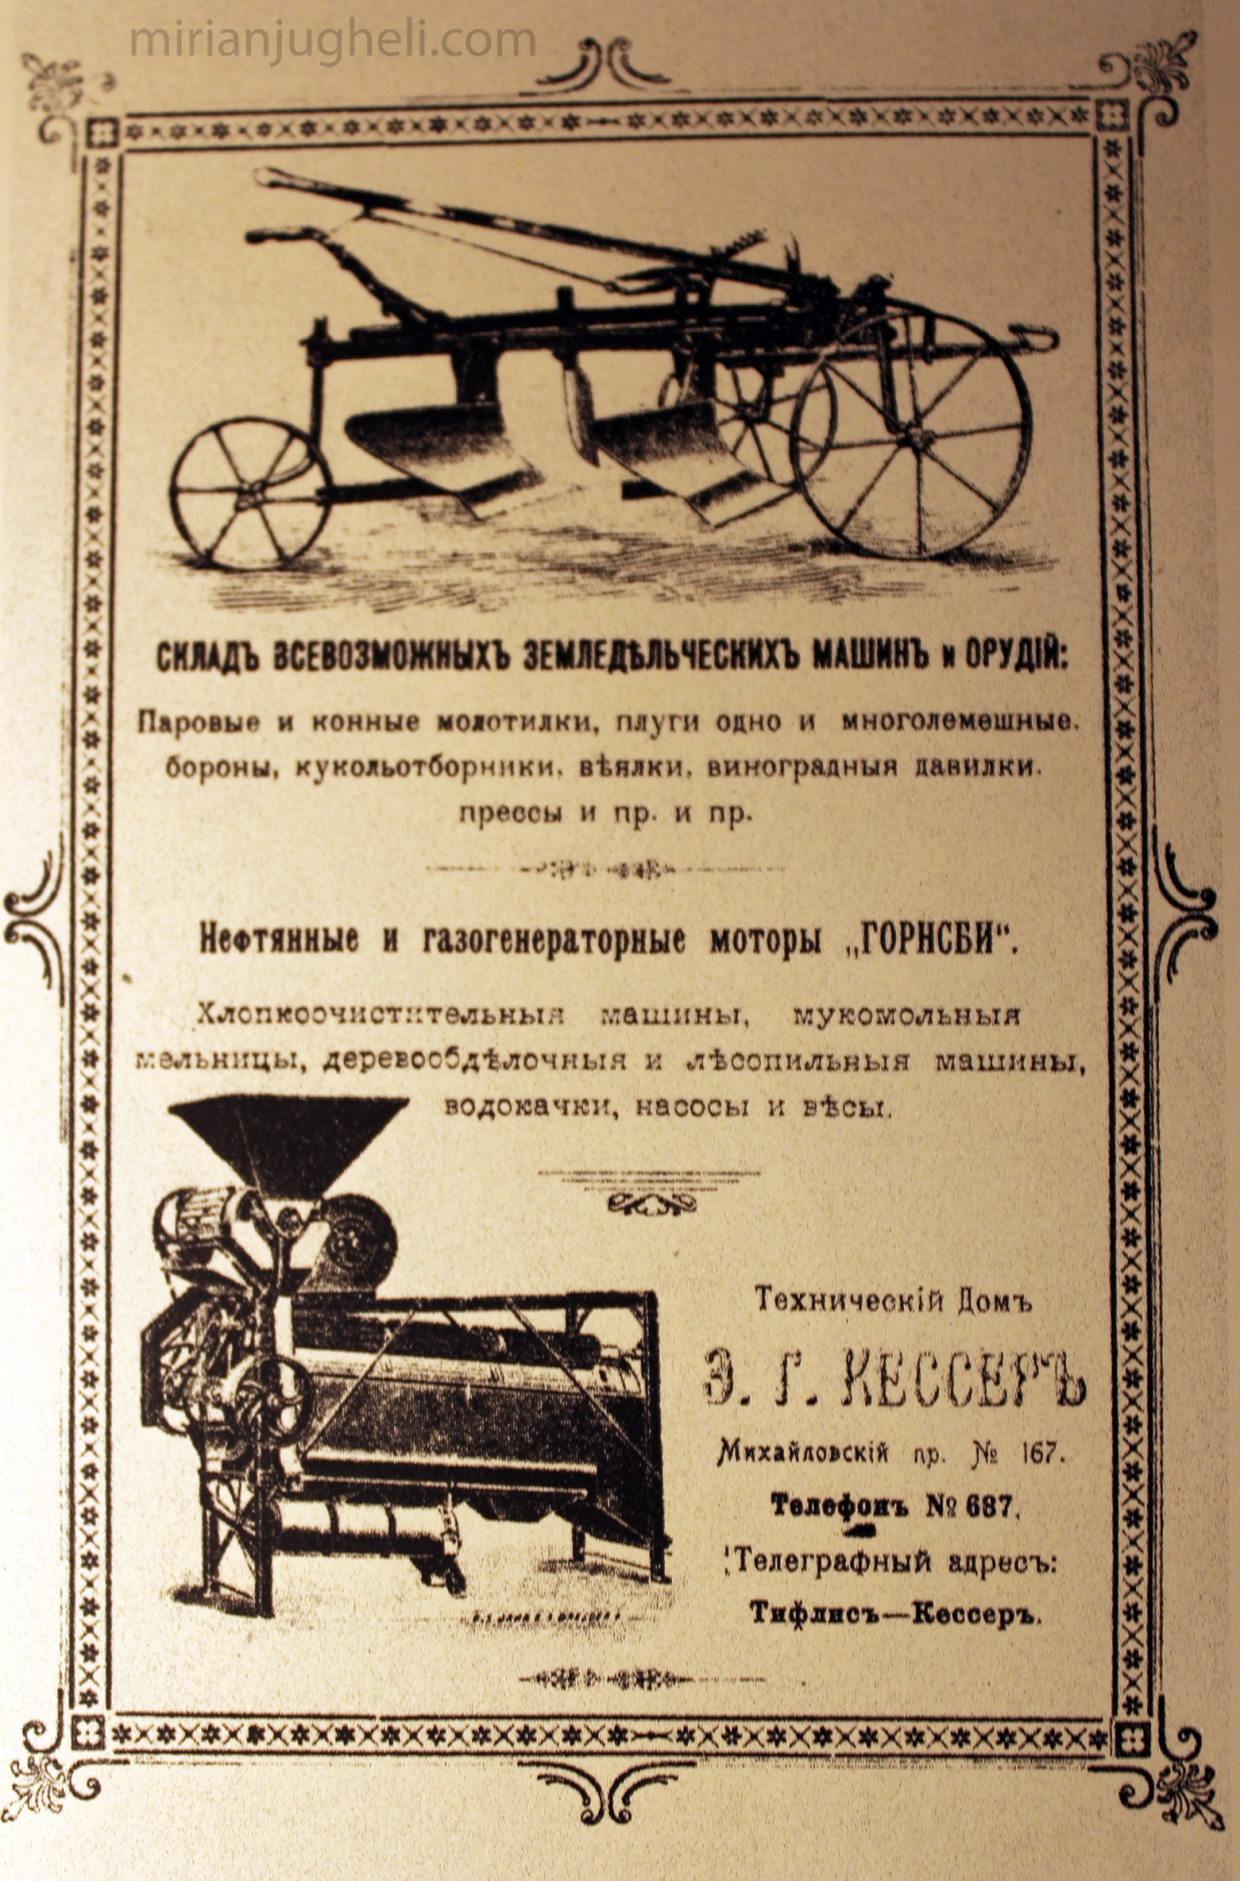 20th_century_georgian_advertising-23.jpg